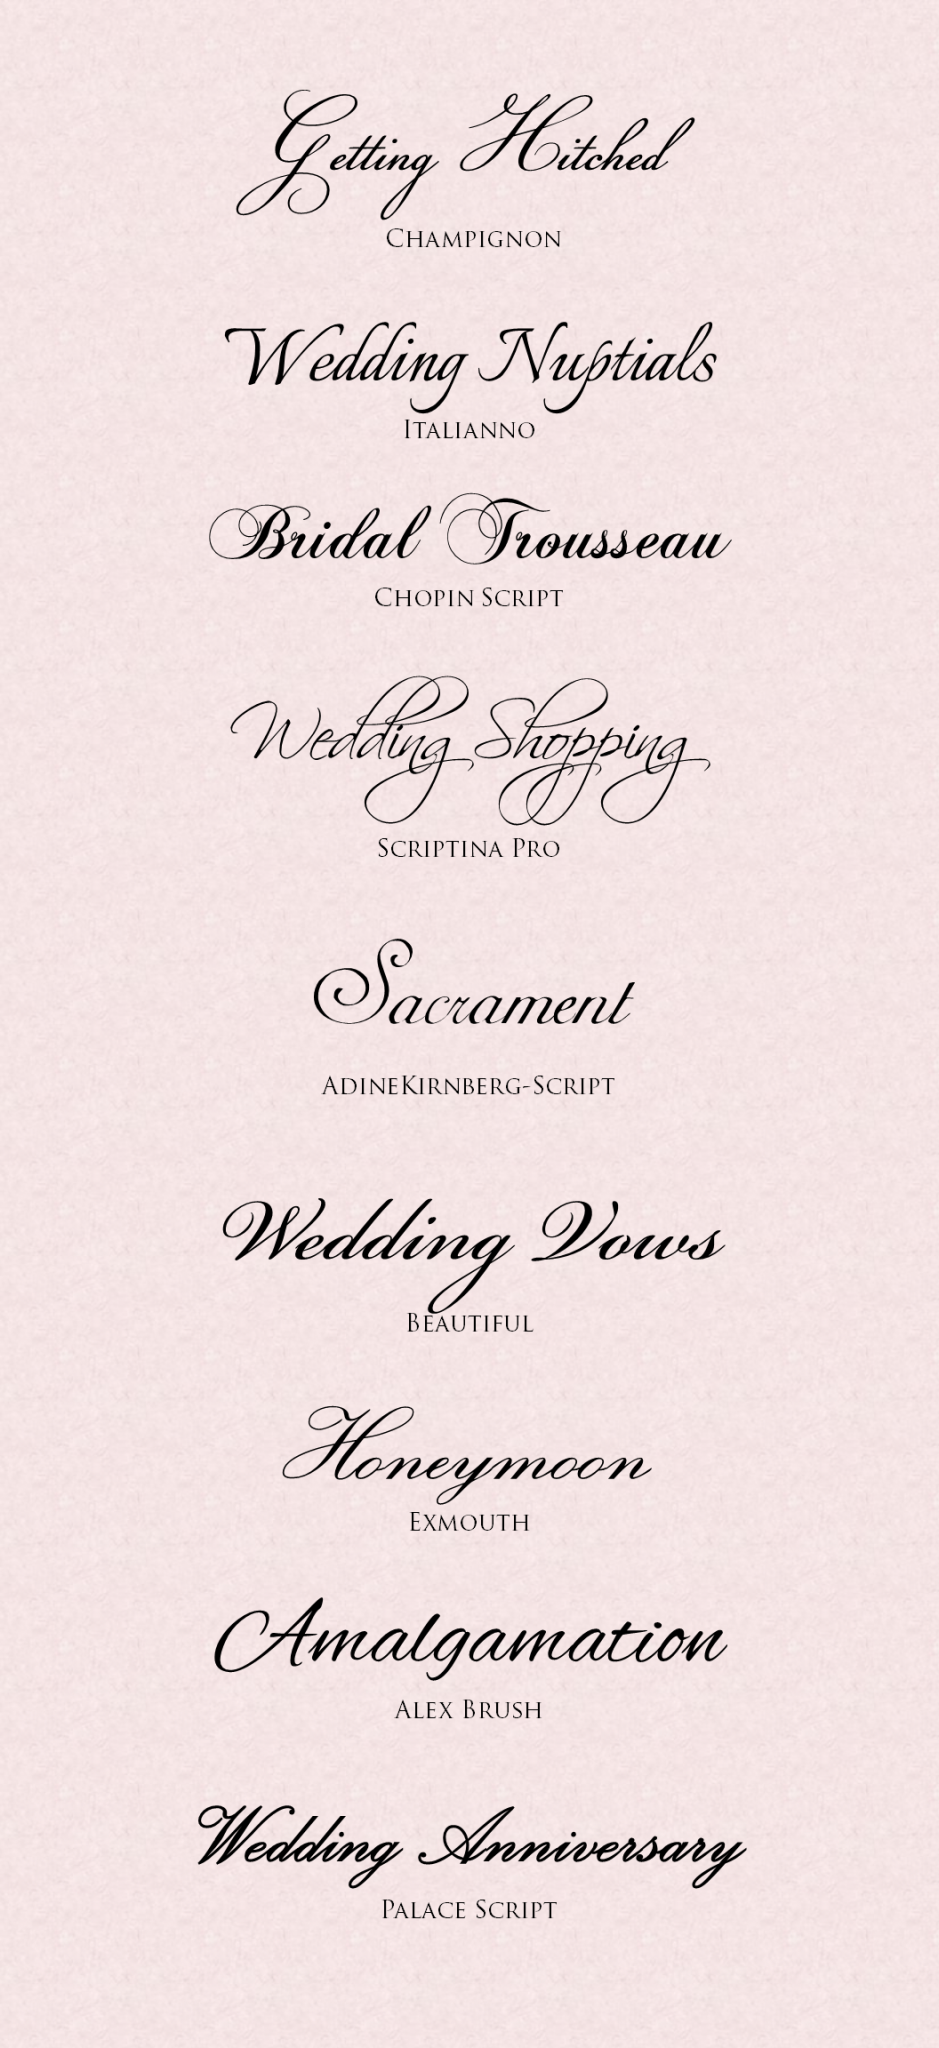 Wedding Invitation Fonts.Make A Personal Statement Through Wedding Invitations Our Pick Of